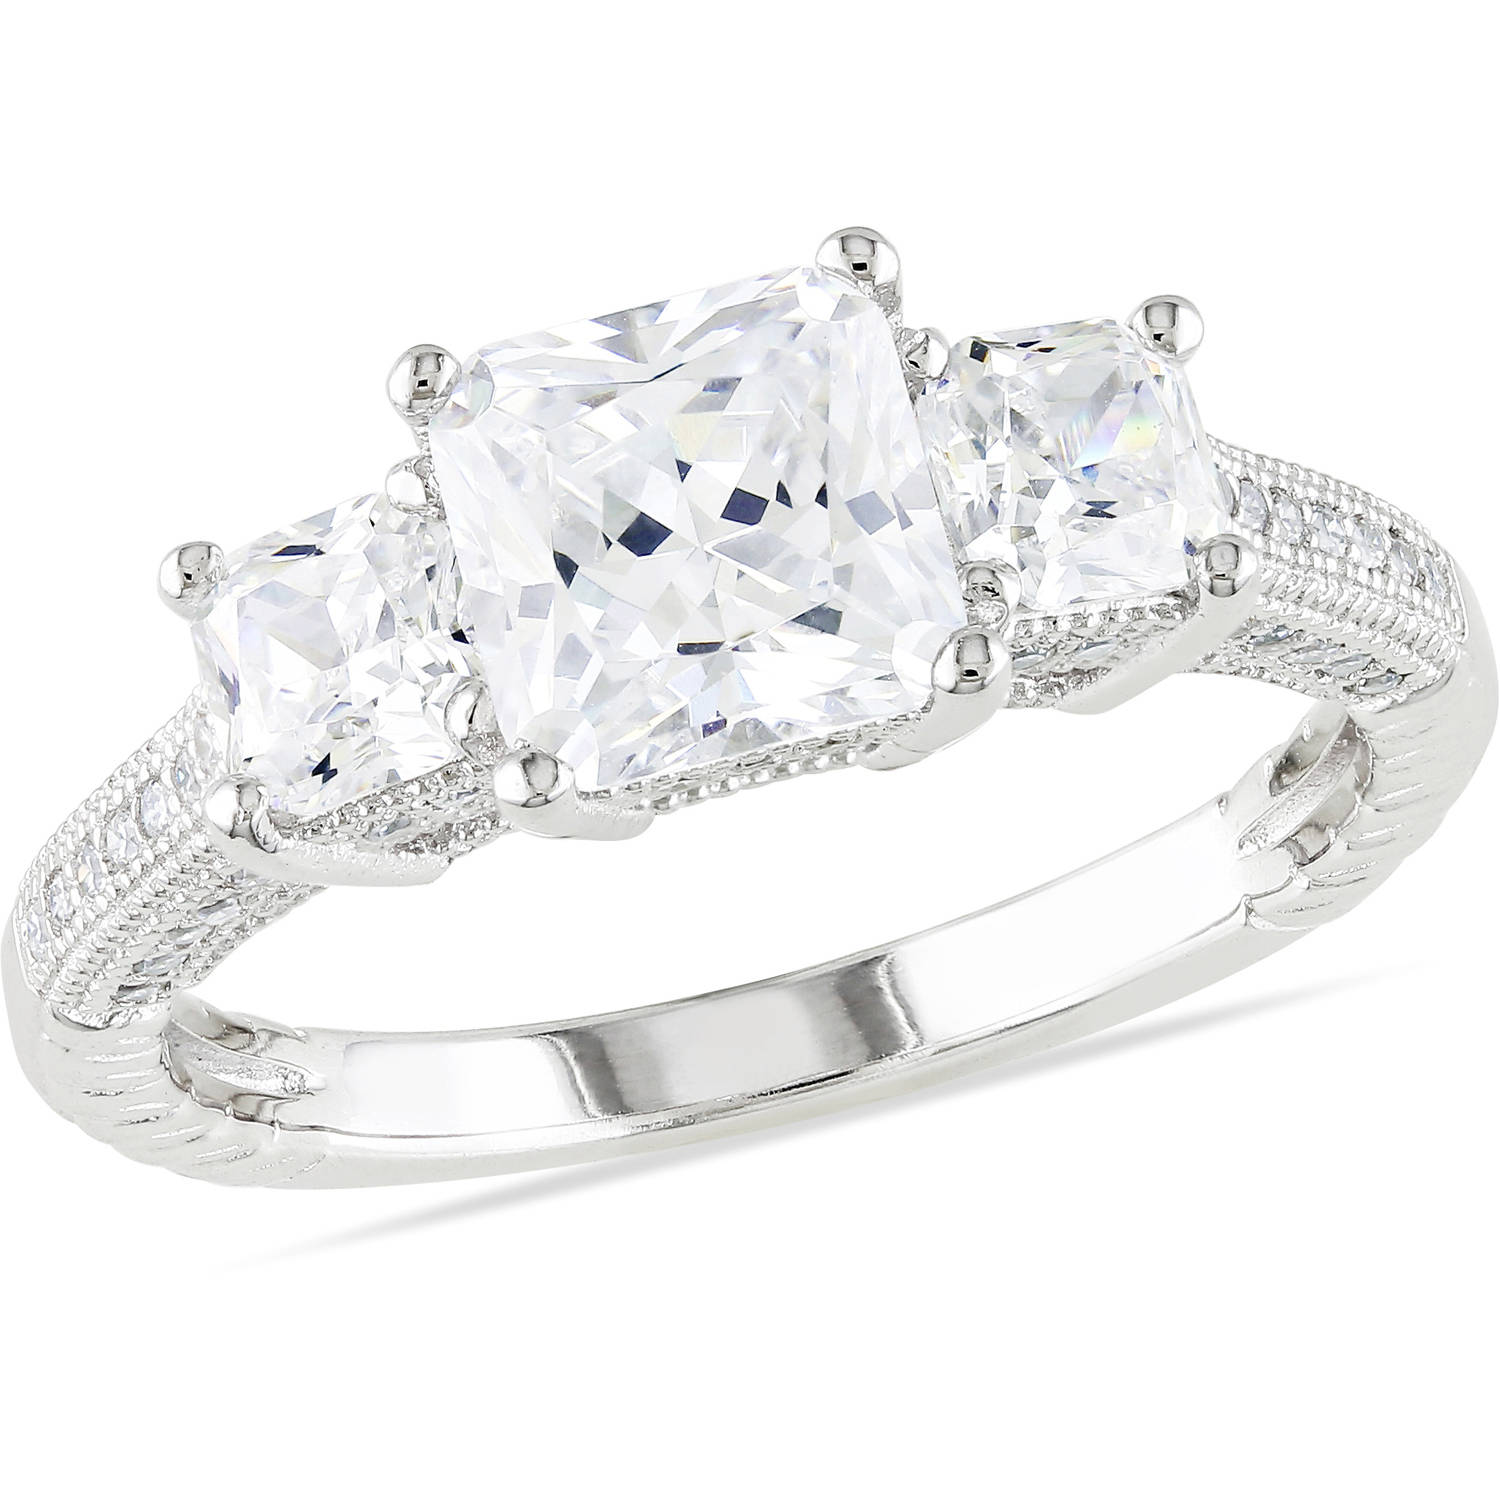 wedding engagement rings walmartcom - Wedding Rings From Walmart